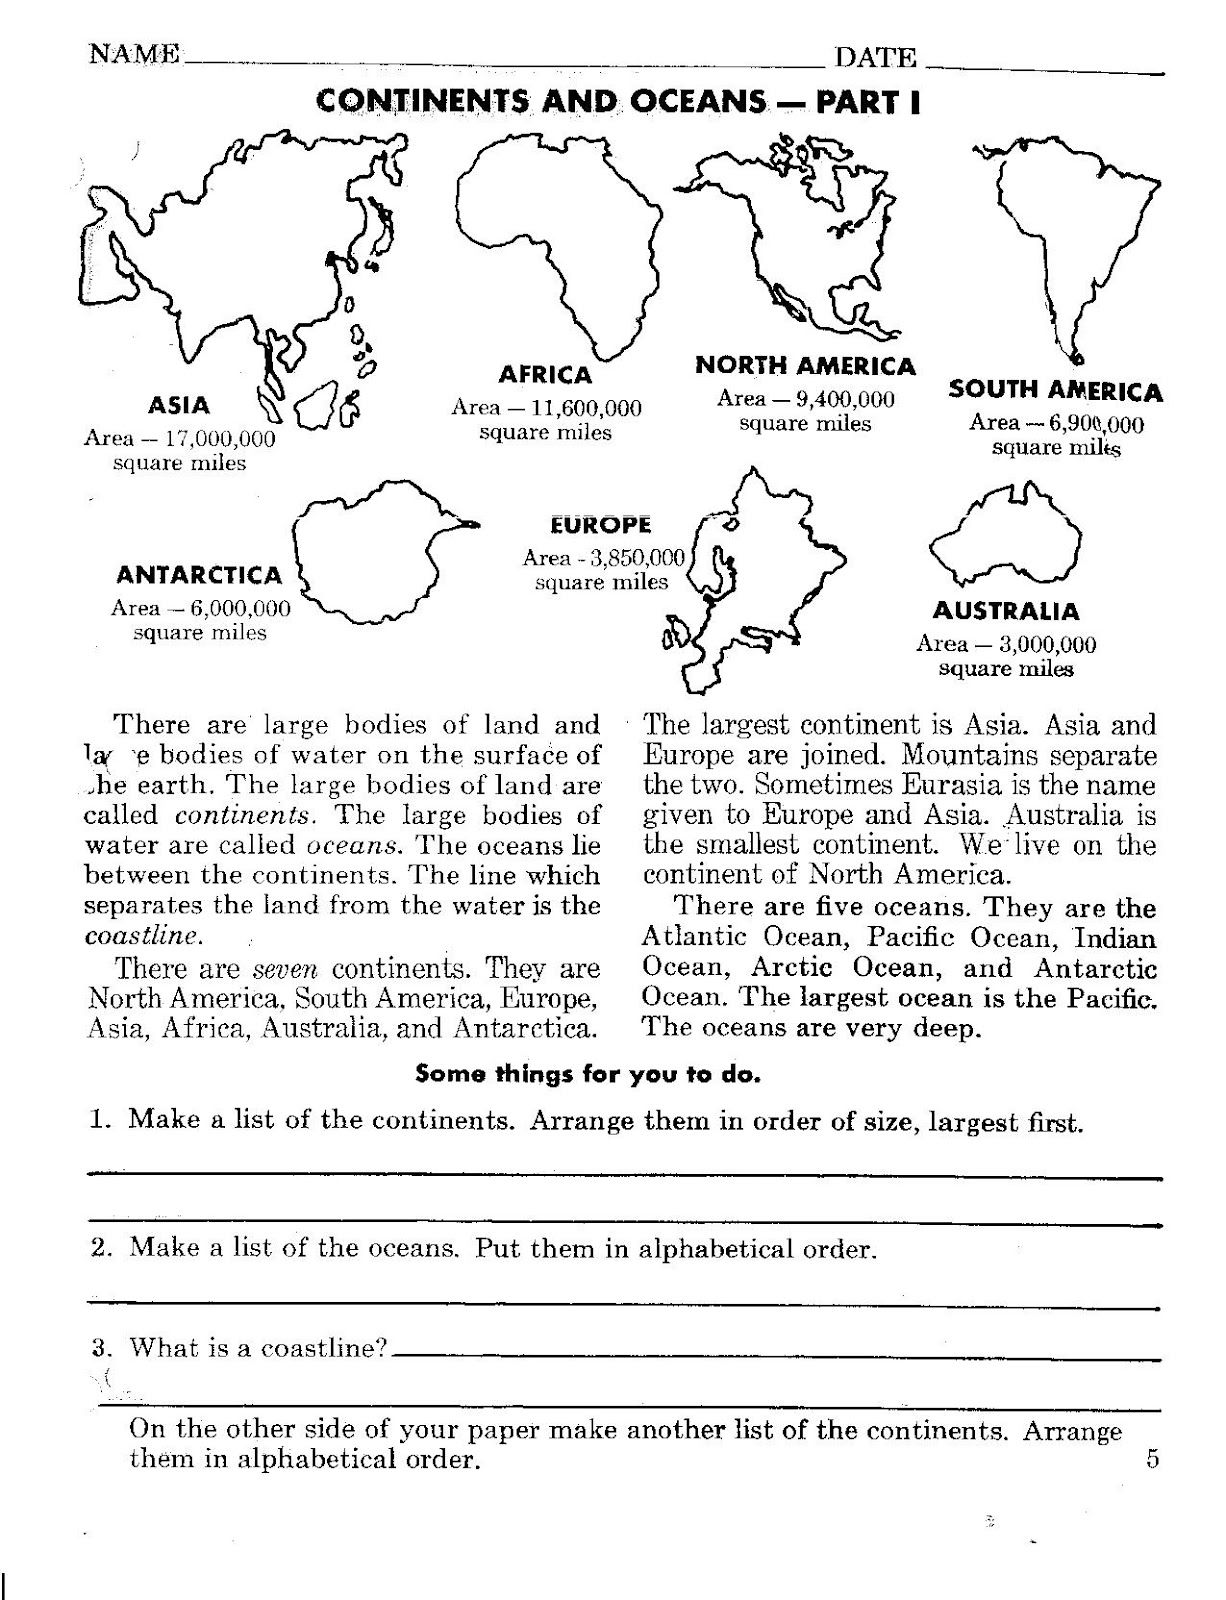 Worksheets Label The Continents And Oceans Worksheet continents and oceans worksheets ogps earth science pinterest worksheets